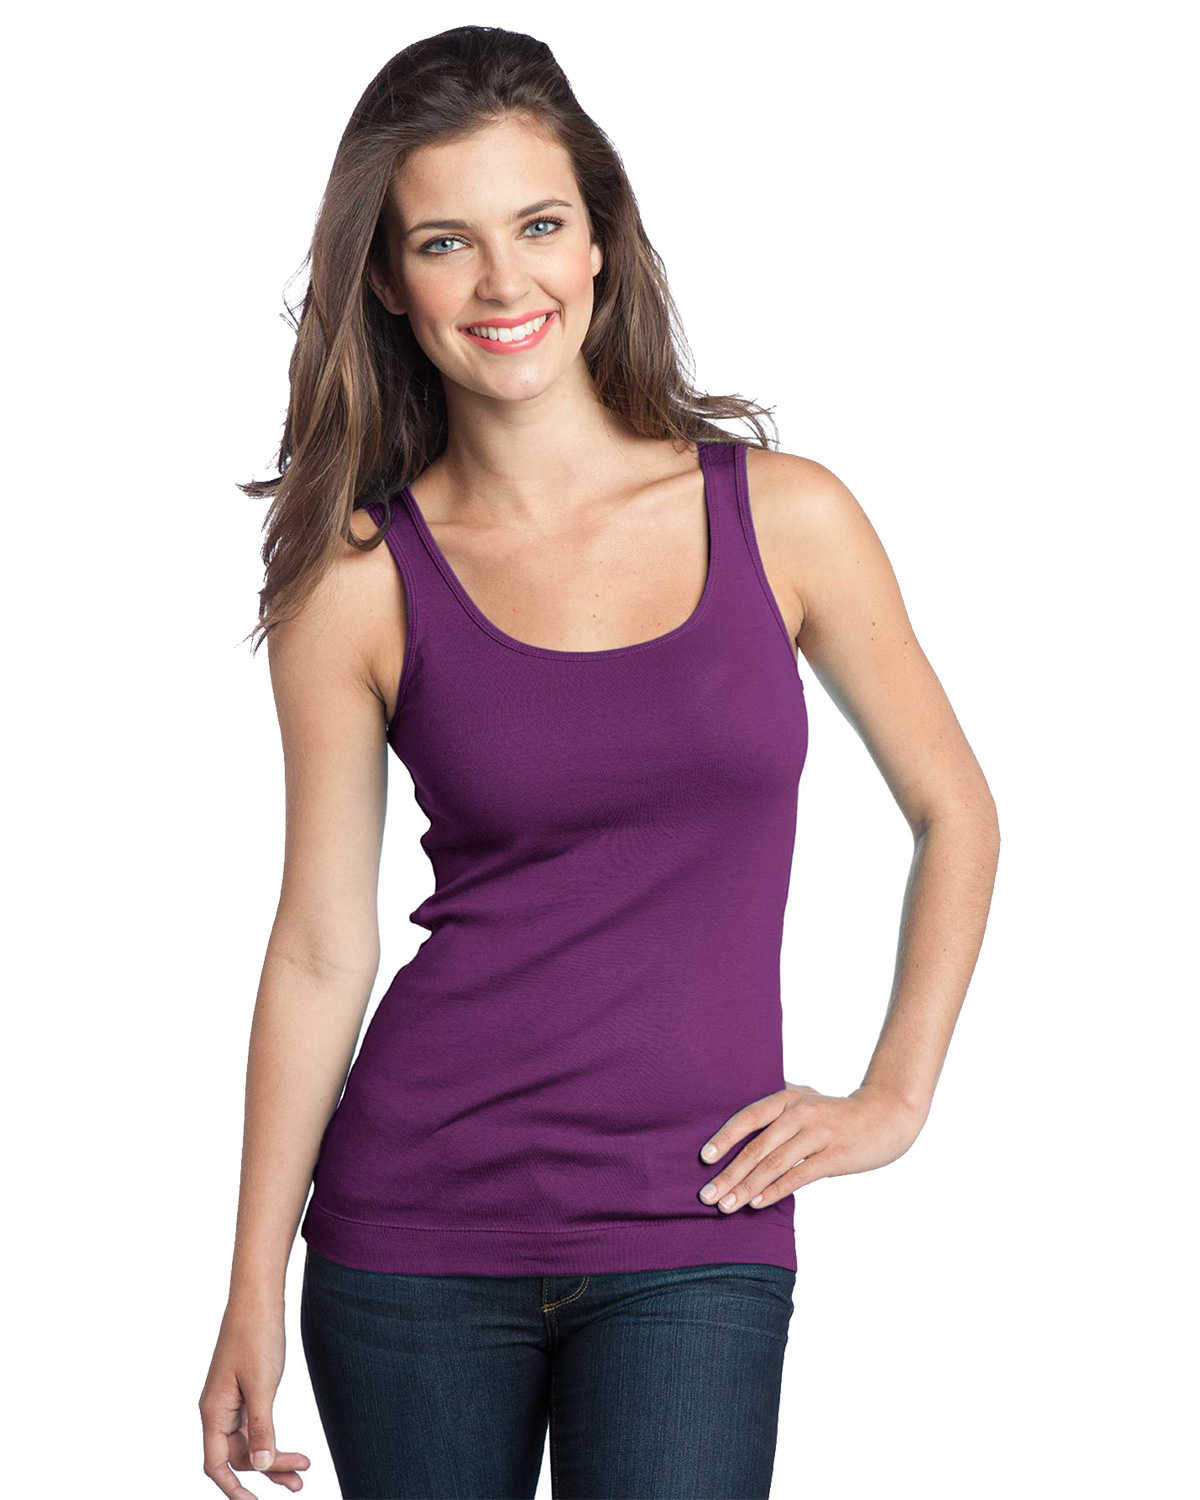 Shop tank tops for women with wholesale cheap price and fast delivery, and find more lace & racerback tank tops online with drop shipping.